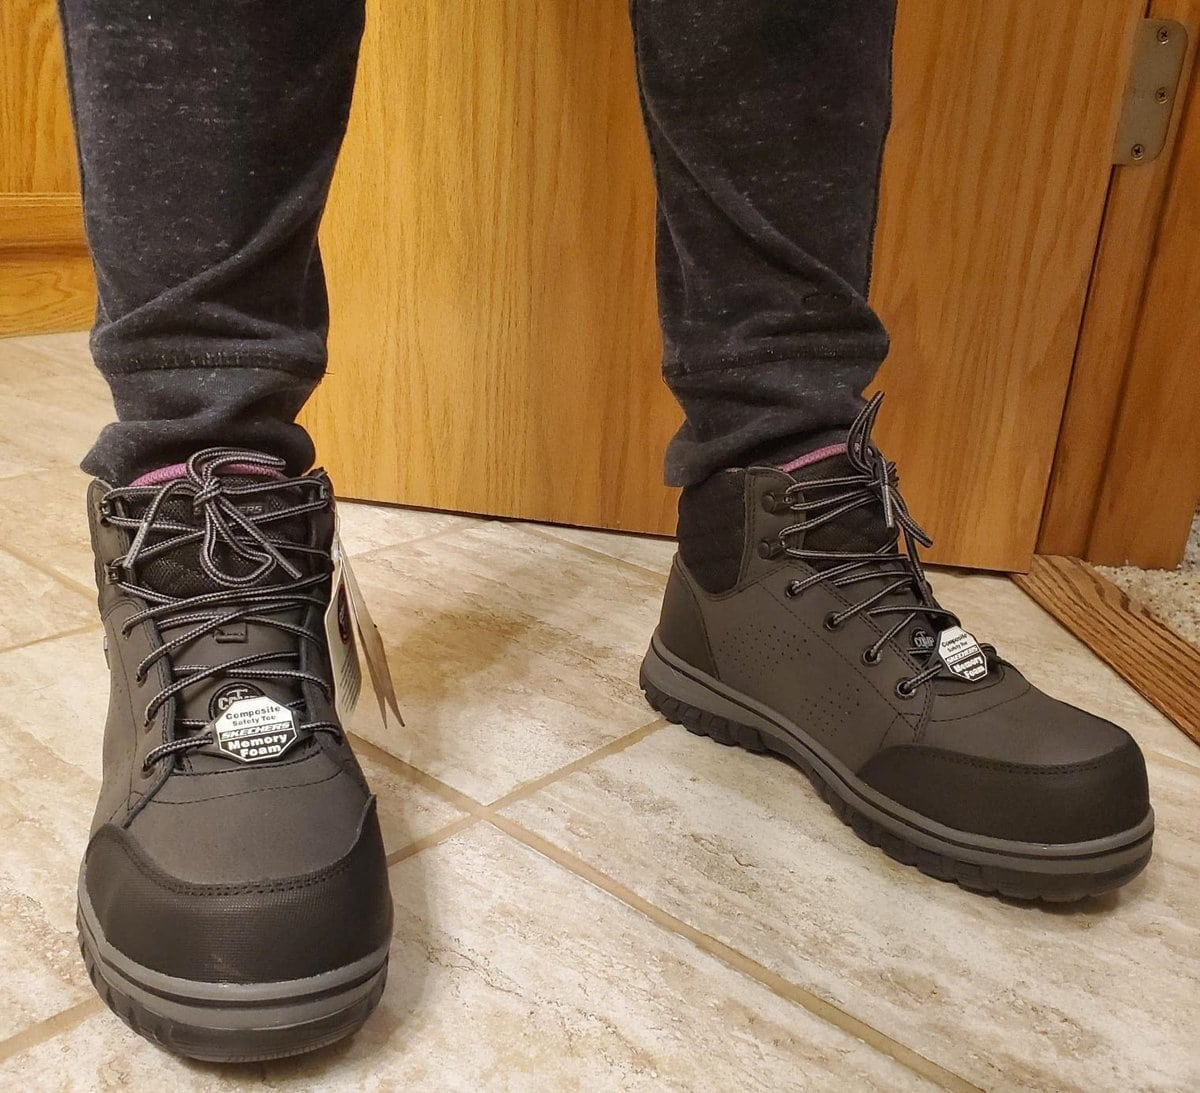 The McColl comp toe work boots from Skechers are the most popular boots at Zappos